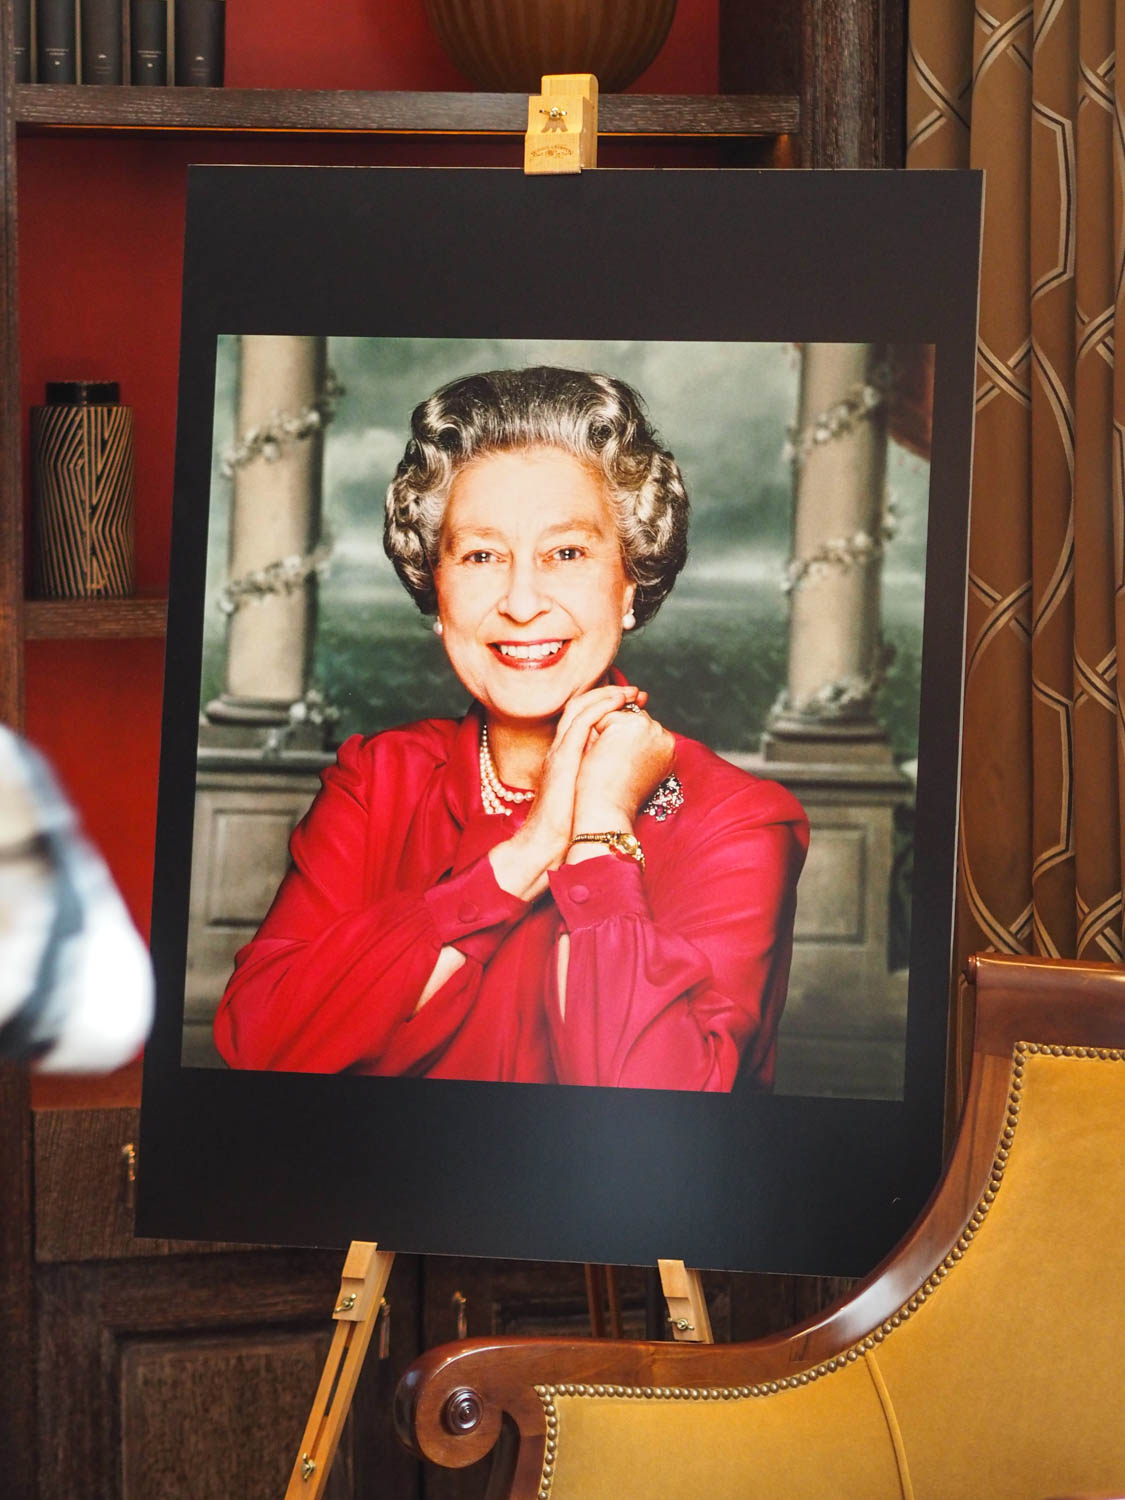 Celebrating The Queen's 90th Birthday at Corinthia Hotel London